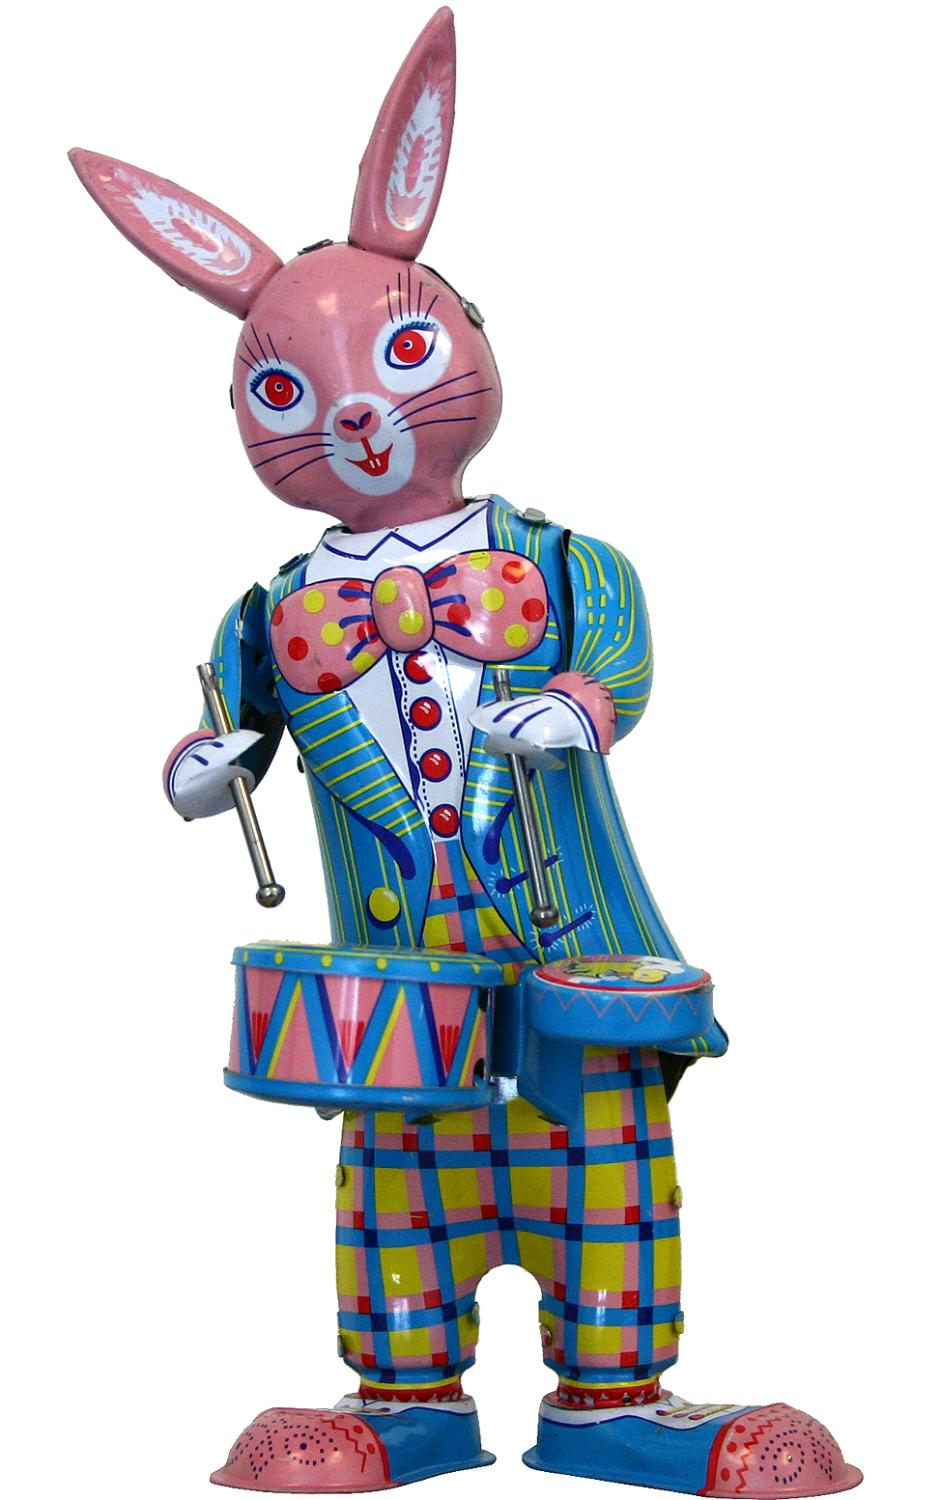 Collectible Tin Toy - Bunny with Drums